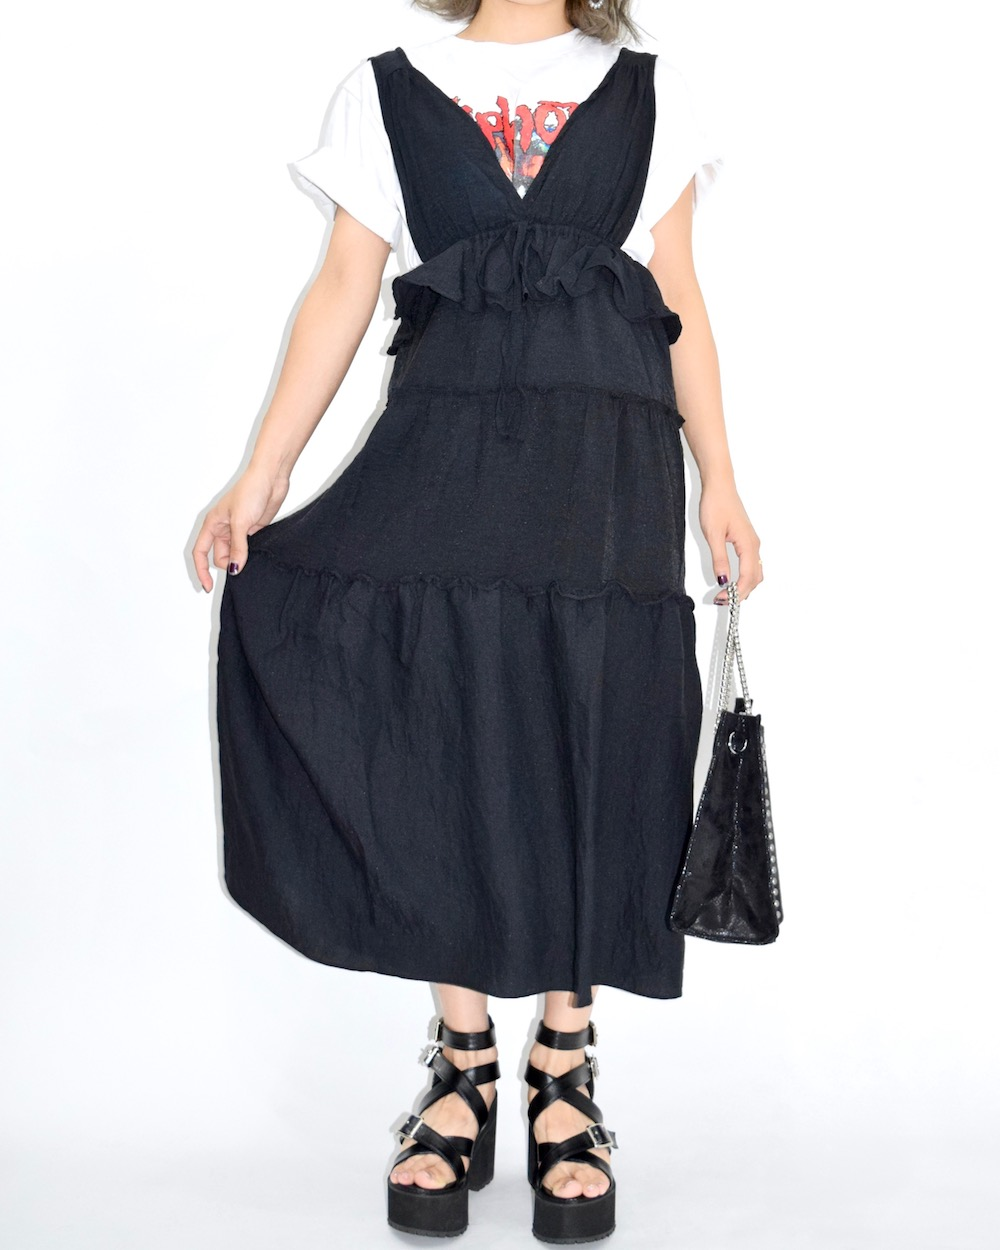 Frill Tiered Black Long Jumper Skirt